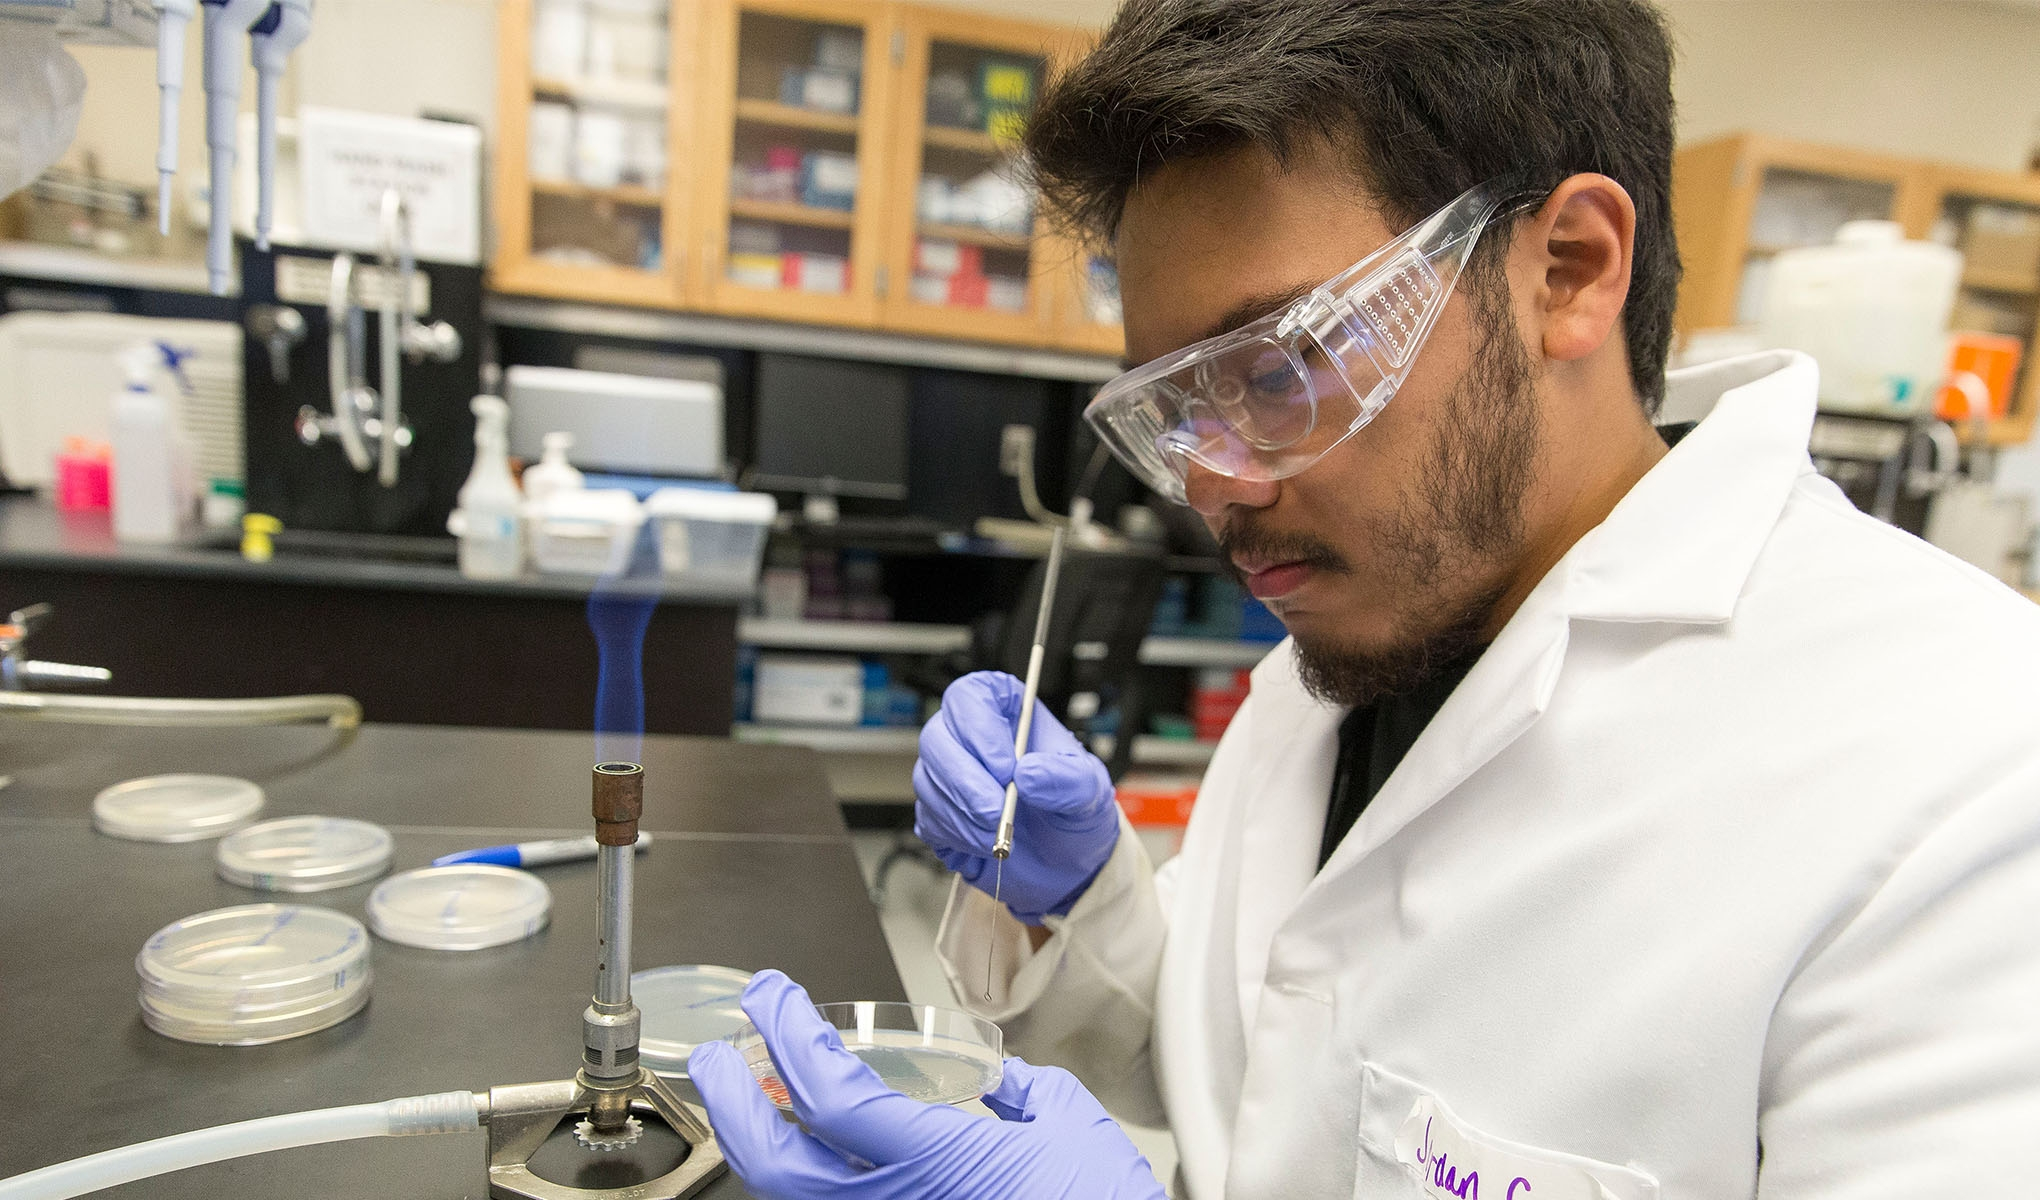 A man in a white lab coat and goggles prods a petri dish next to a small flame in a research laboratory.